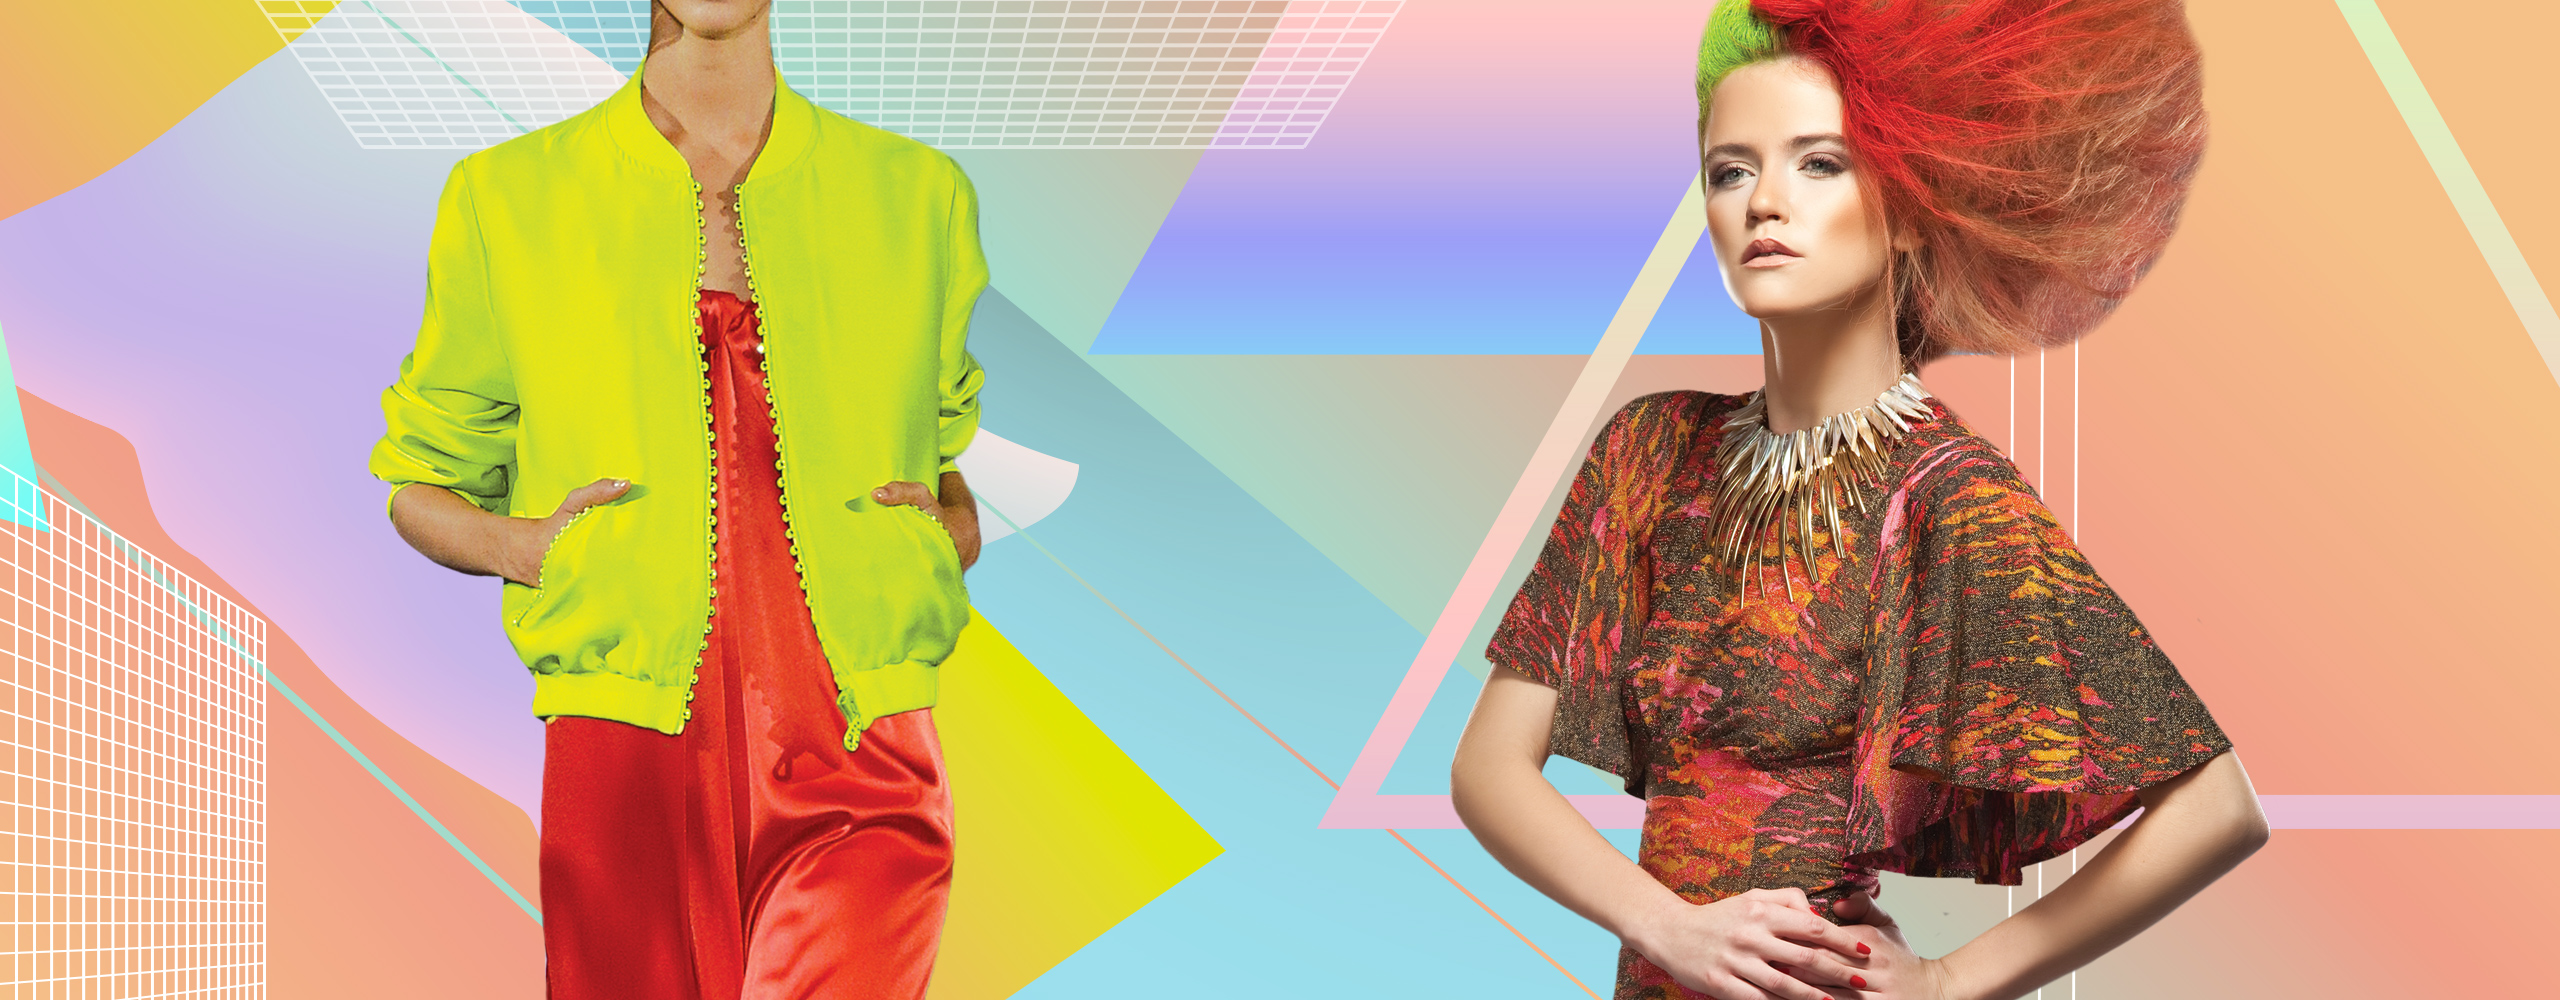 Spring/Summer 2019: It's Neon Time